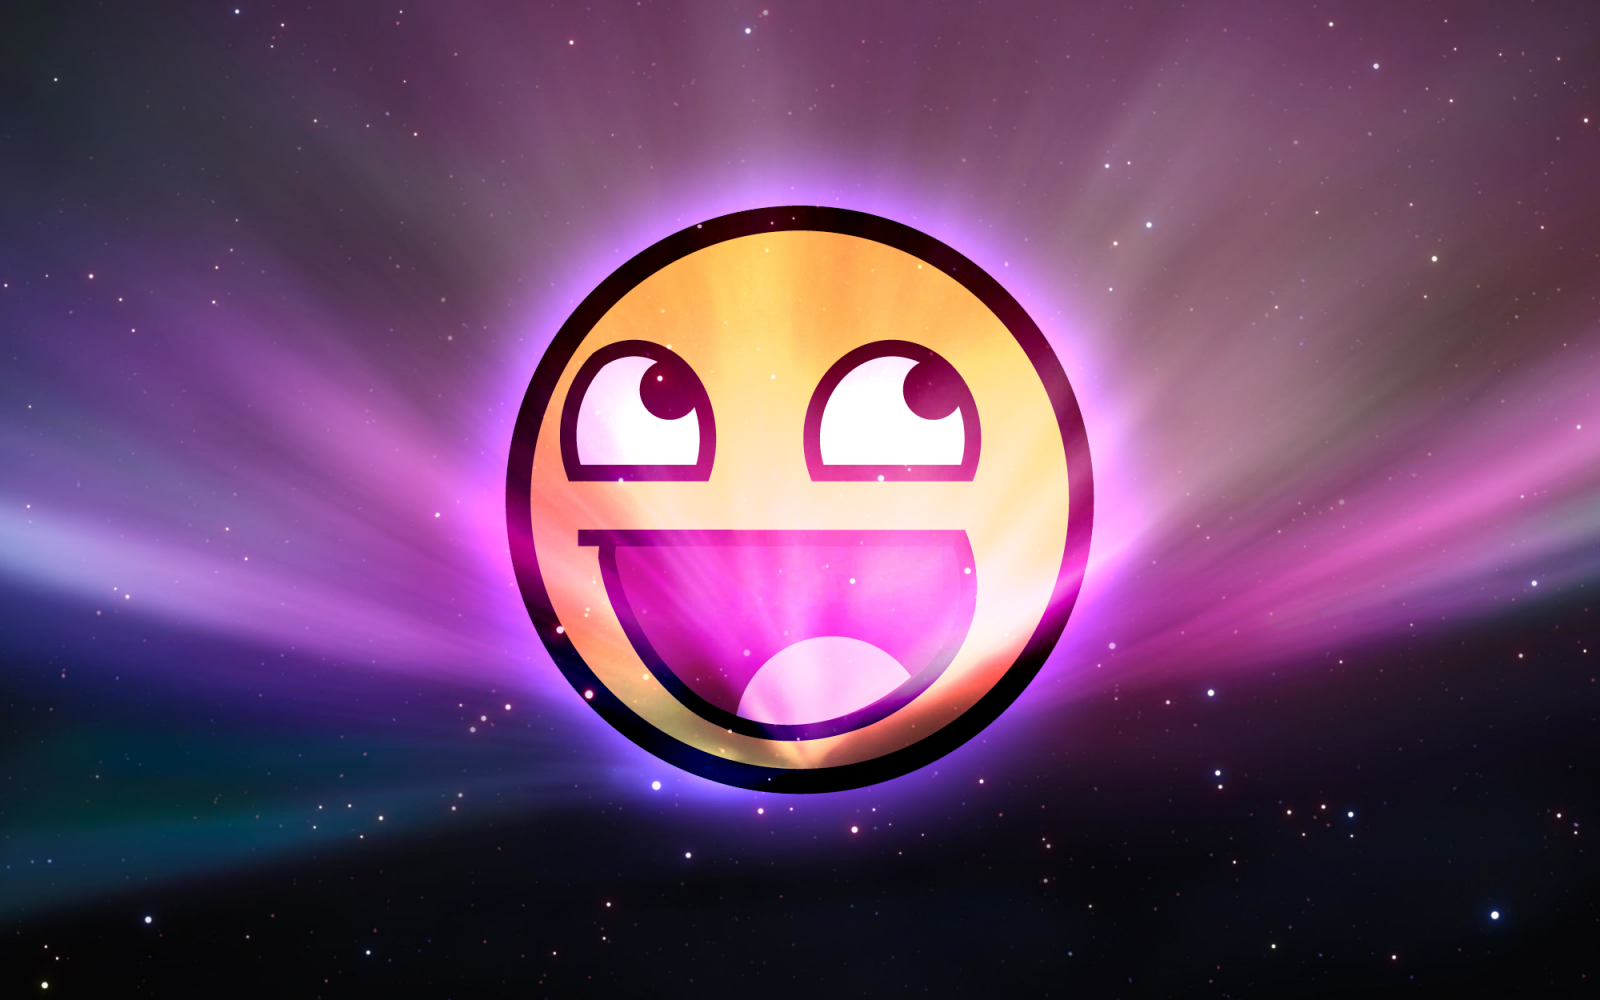 Images For Awesome Smiley Face Wallpaper 1600x1000